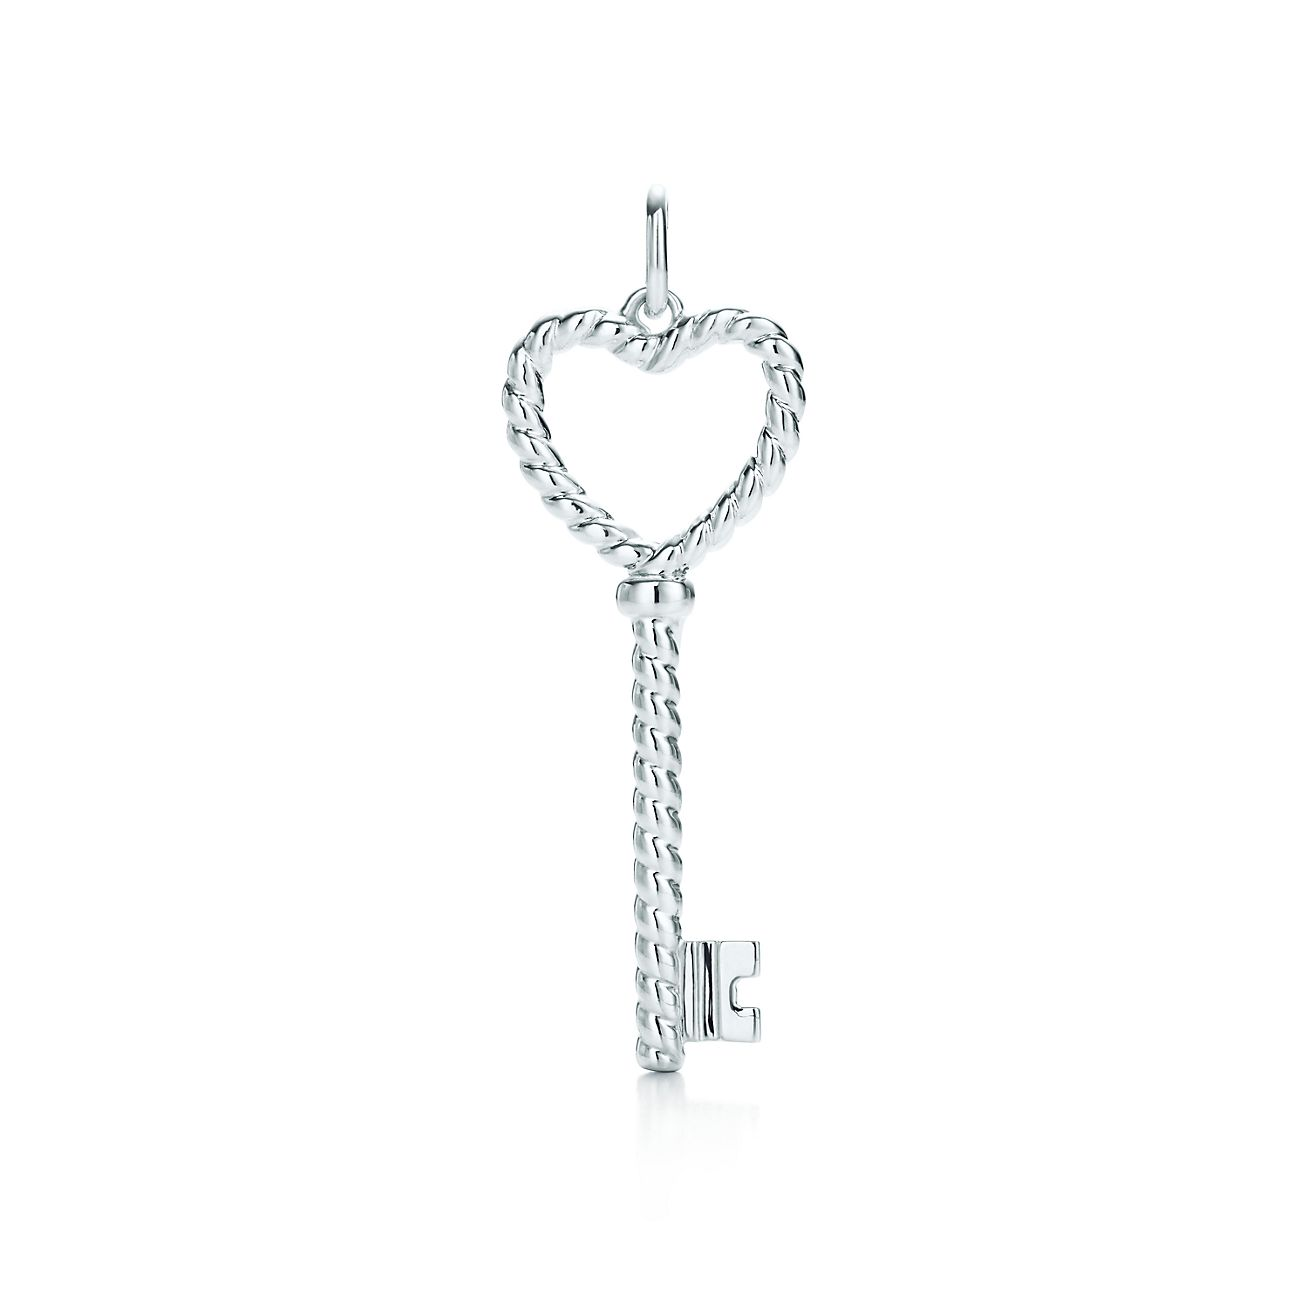 Explore Tiffany Silver Jewelry Tiffany Keys Twist Heart Key Pendant 26741297 Tiffany Keys